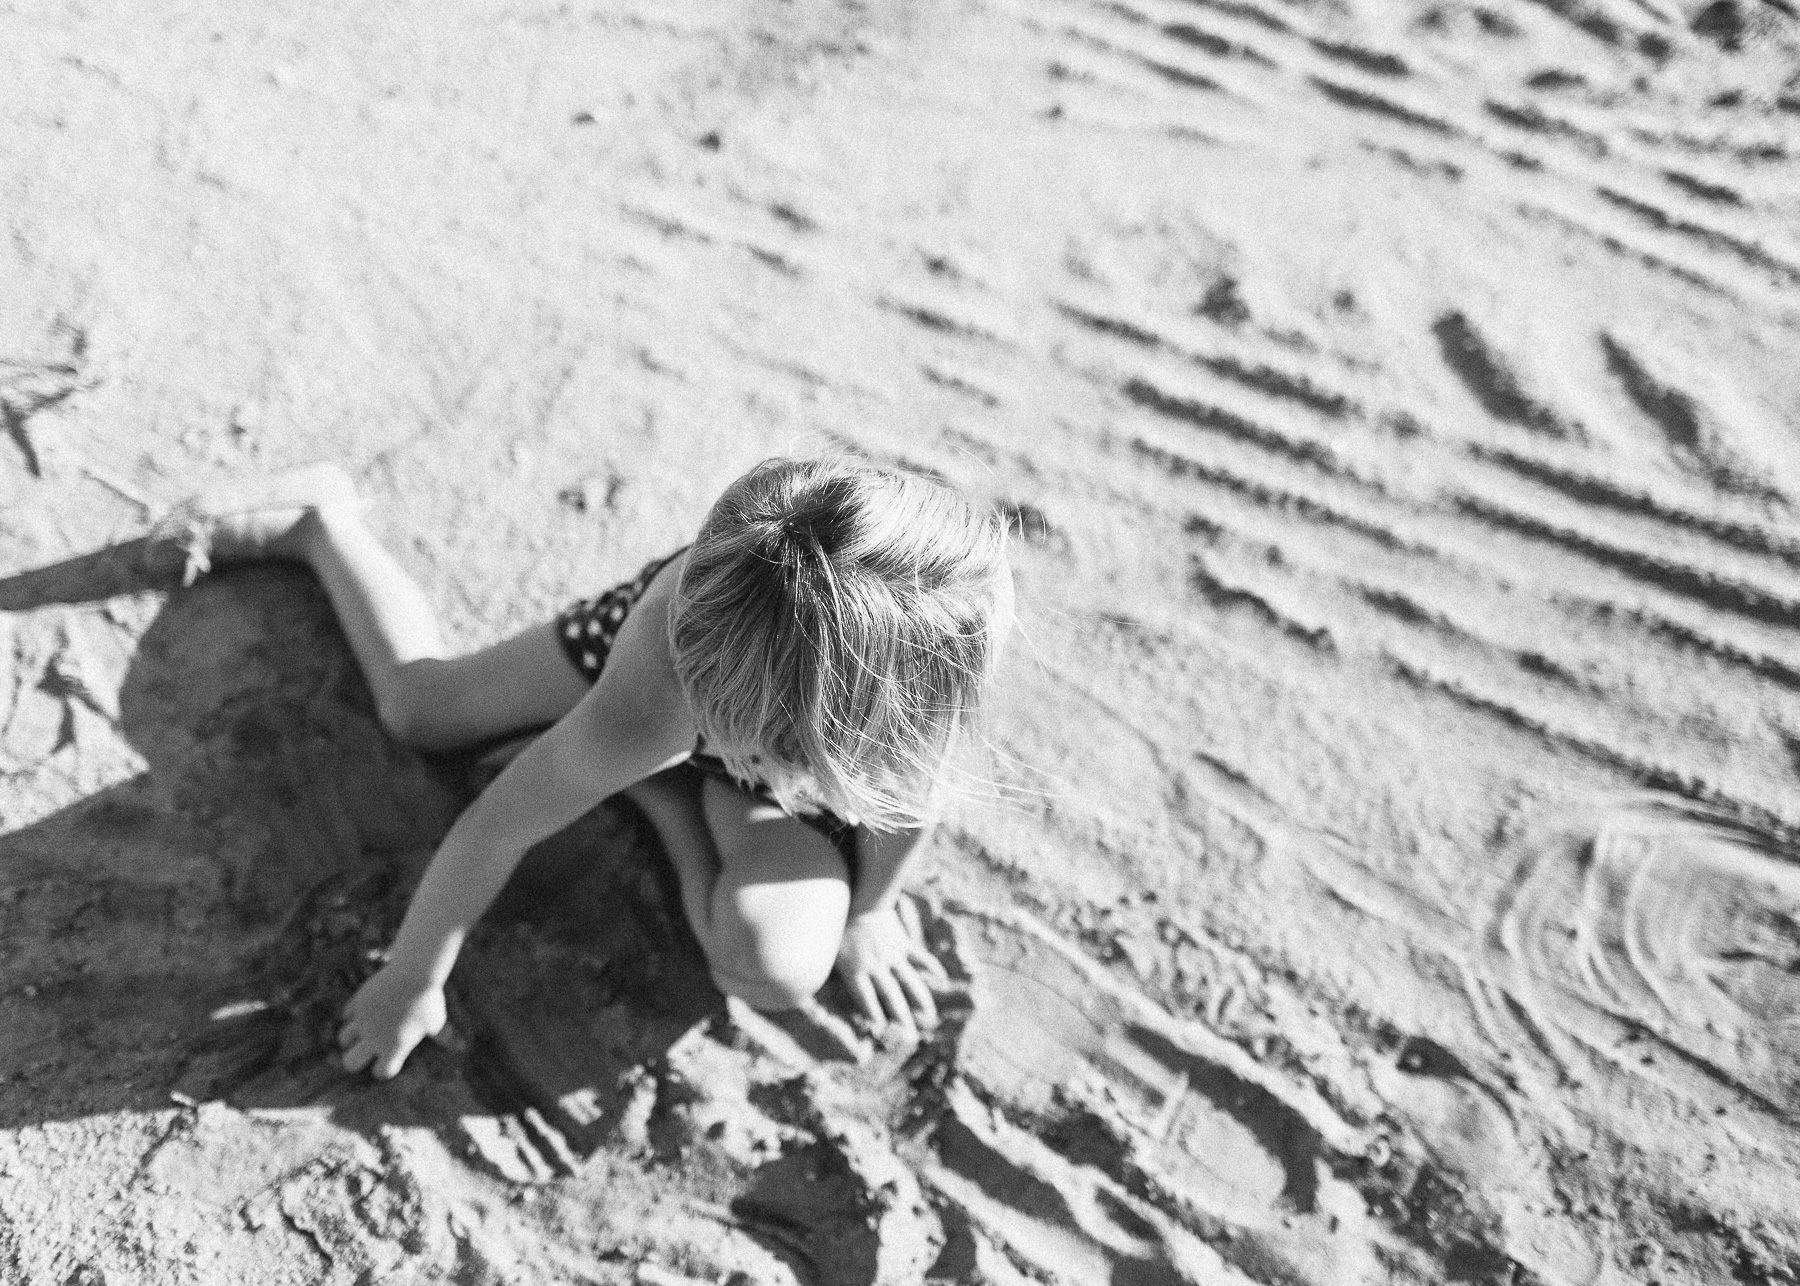 girl playing in dirt